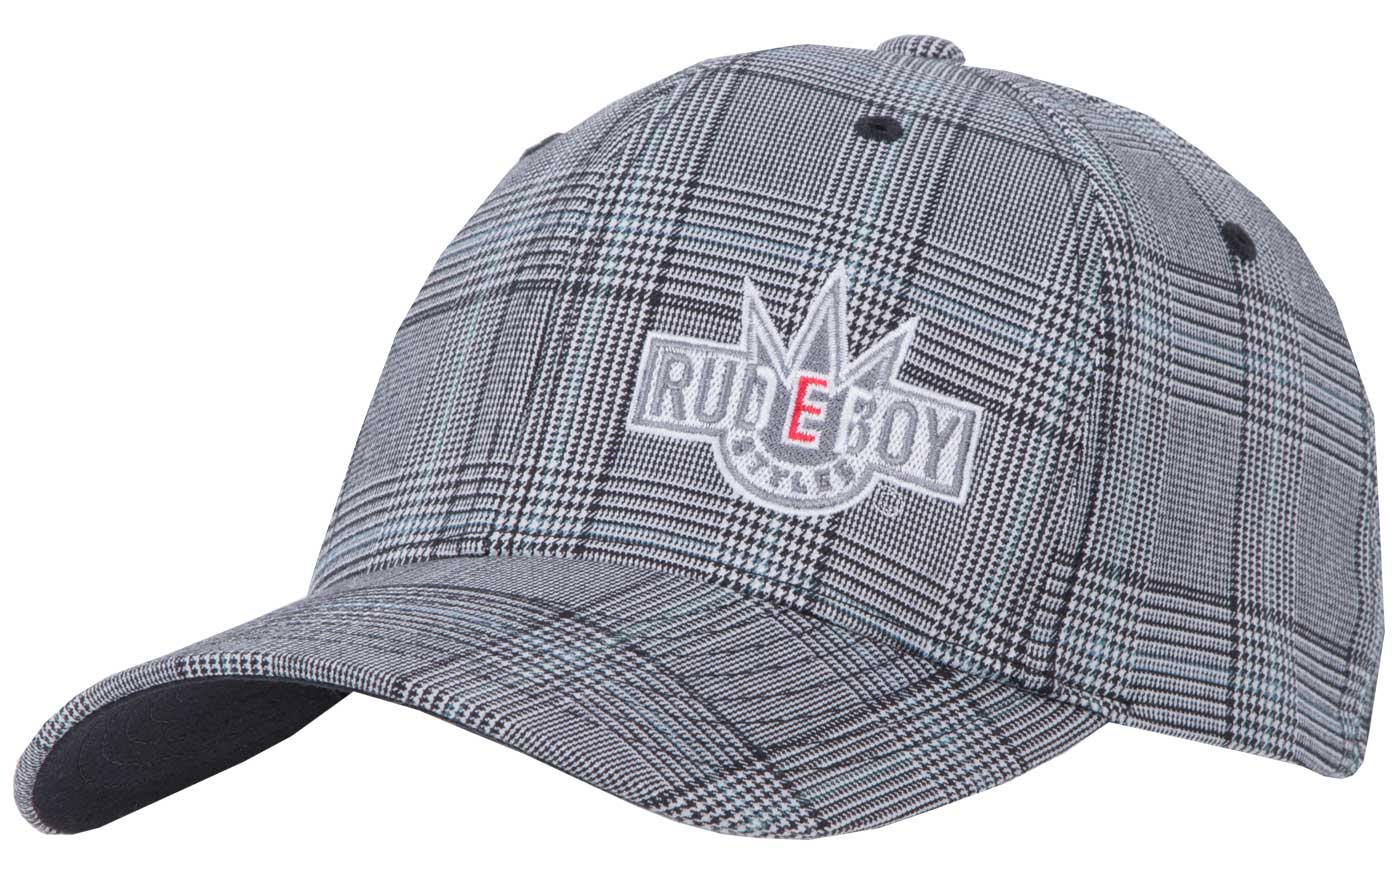 Rudeboy Camo Caps